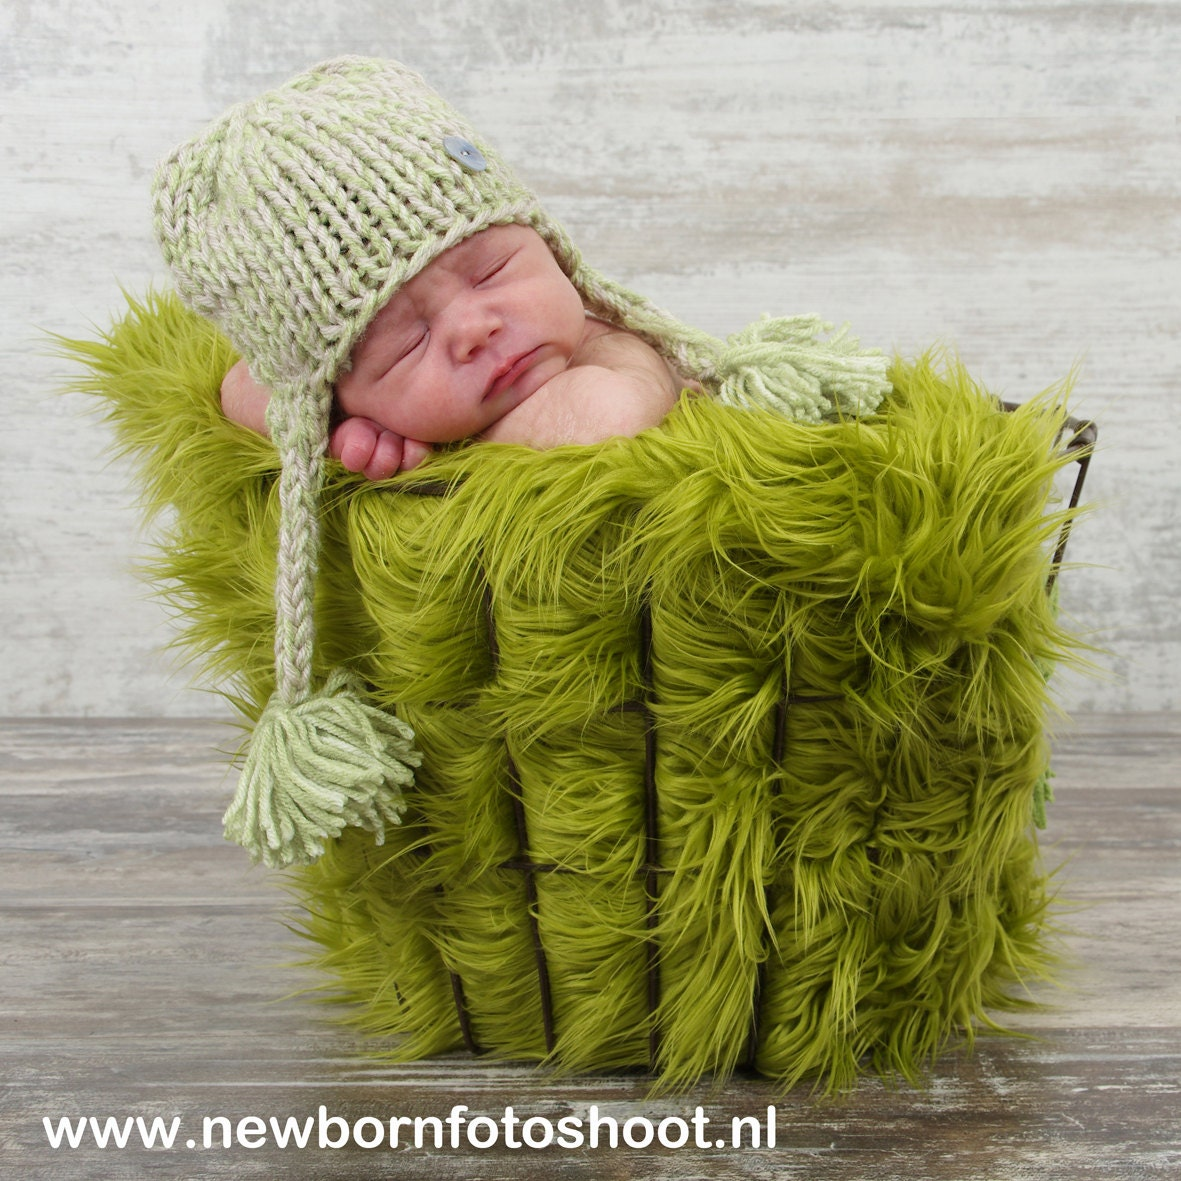 "Olive Green Newborn Baby Boy or Girl  Mongolian 3"" Pile Faux Fur Blanket, Great for photo prop - EcoStreet"